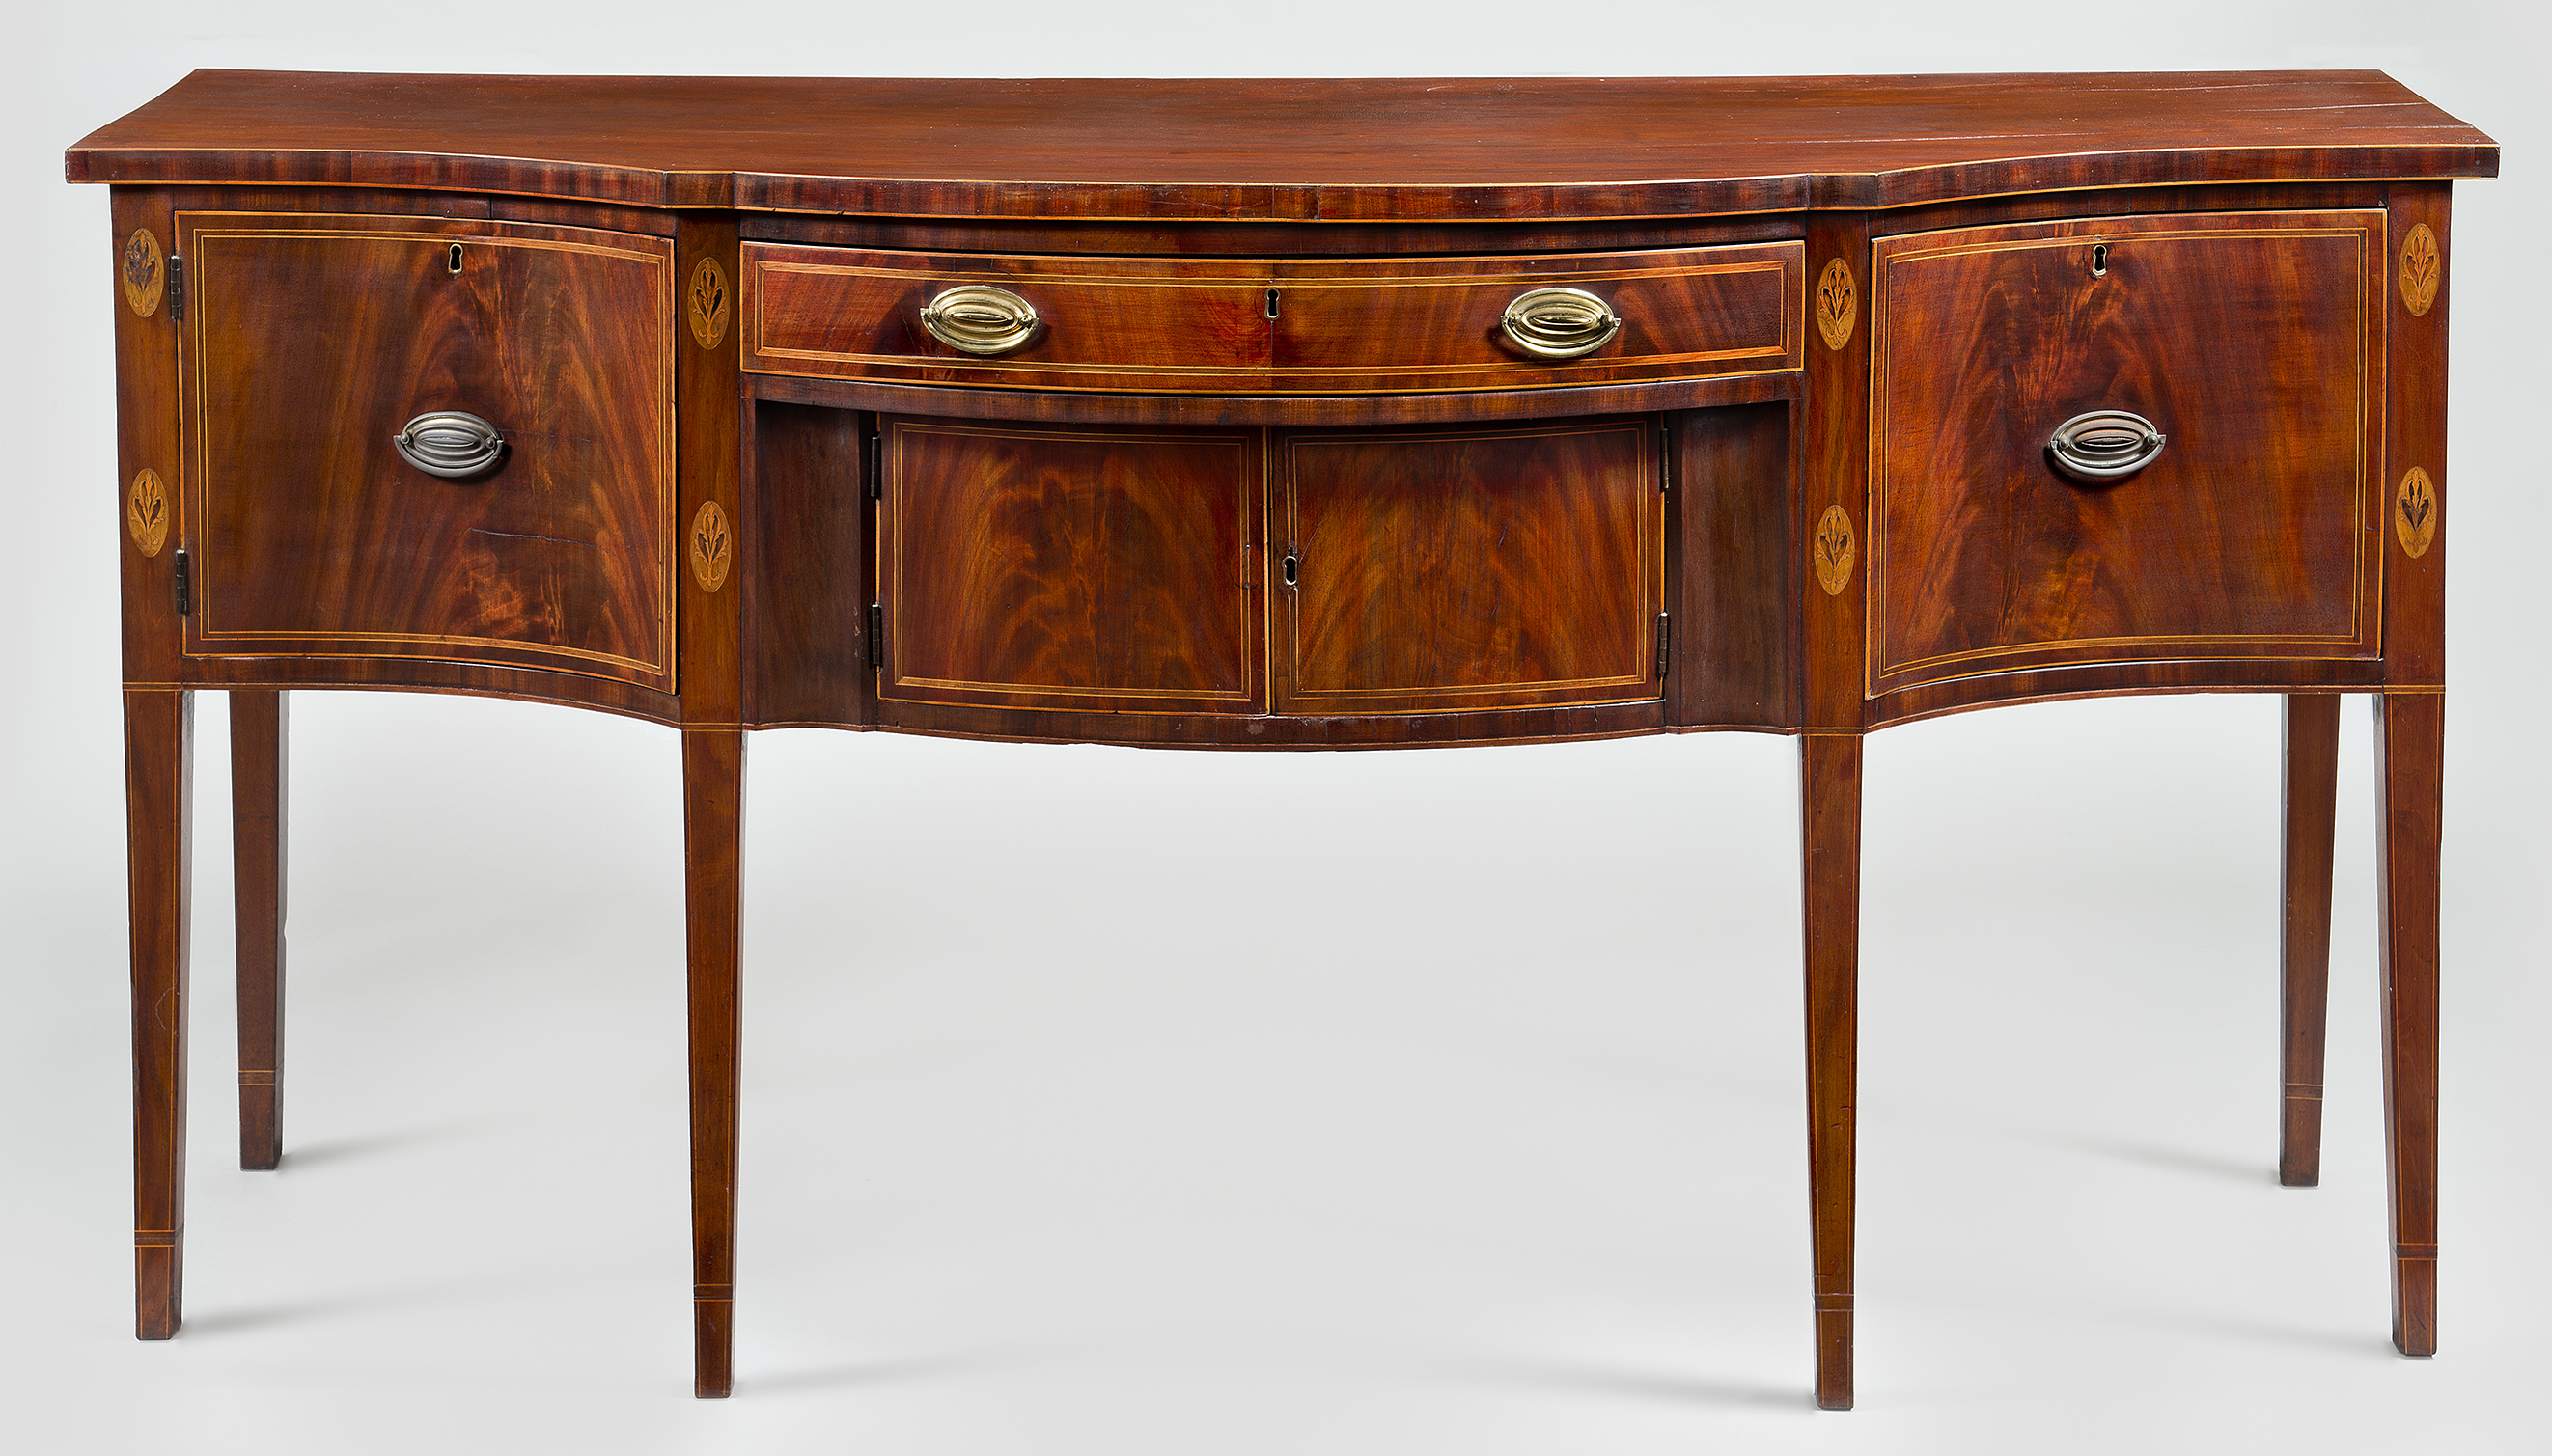 Learn about the sideboard crafted by cabinetmaker John Aitken.